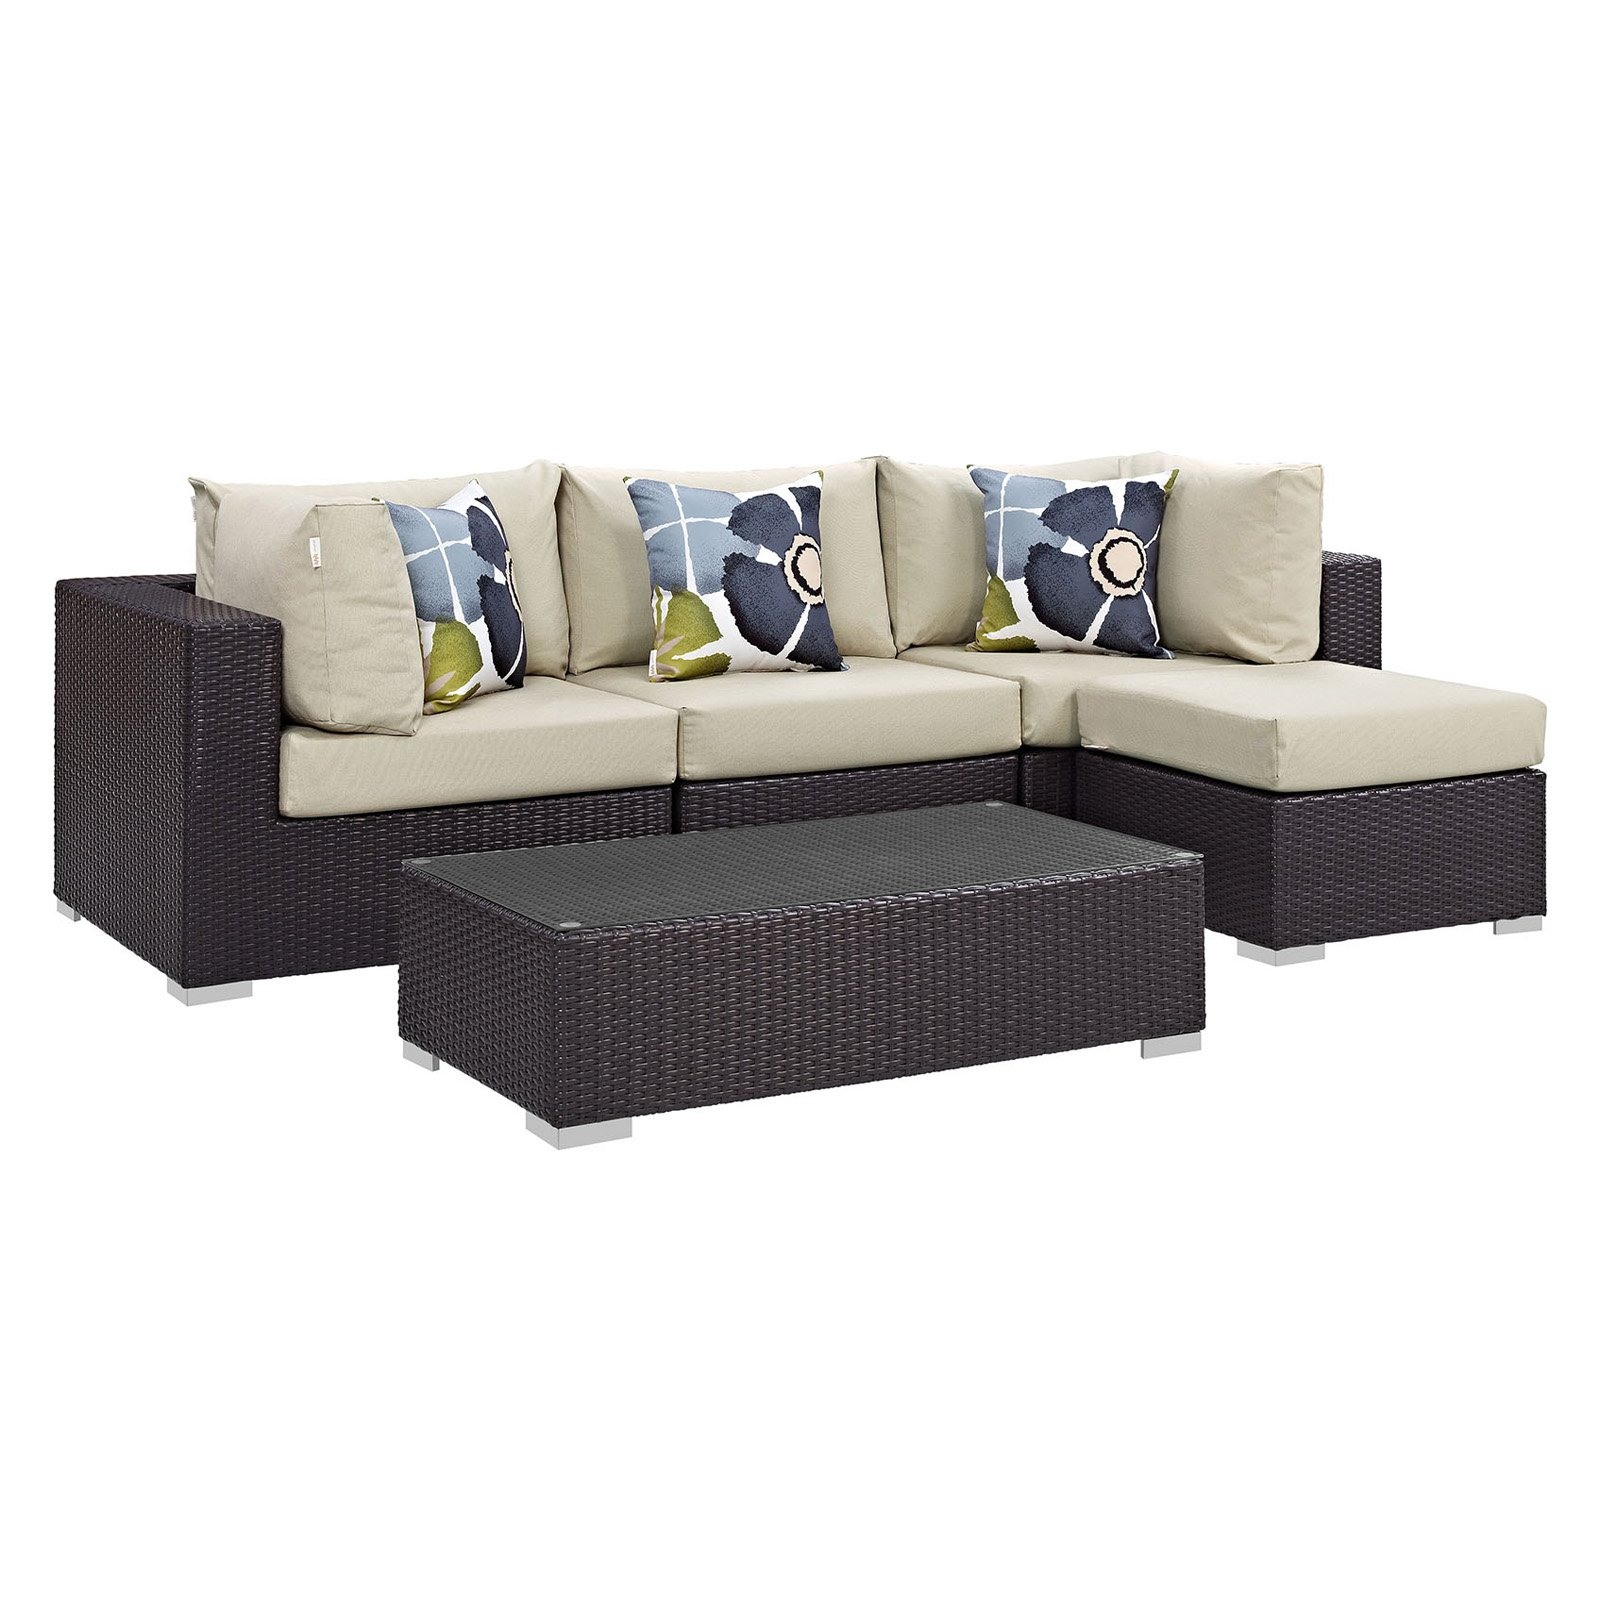 Widely Used Tripp Sofas With Cushions Within Modway Convene 5 Piece Outdoor Patio Chaise Sectional Set (View 9 of 25)